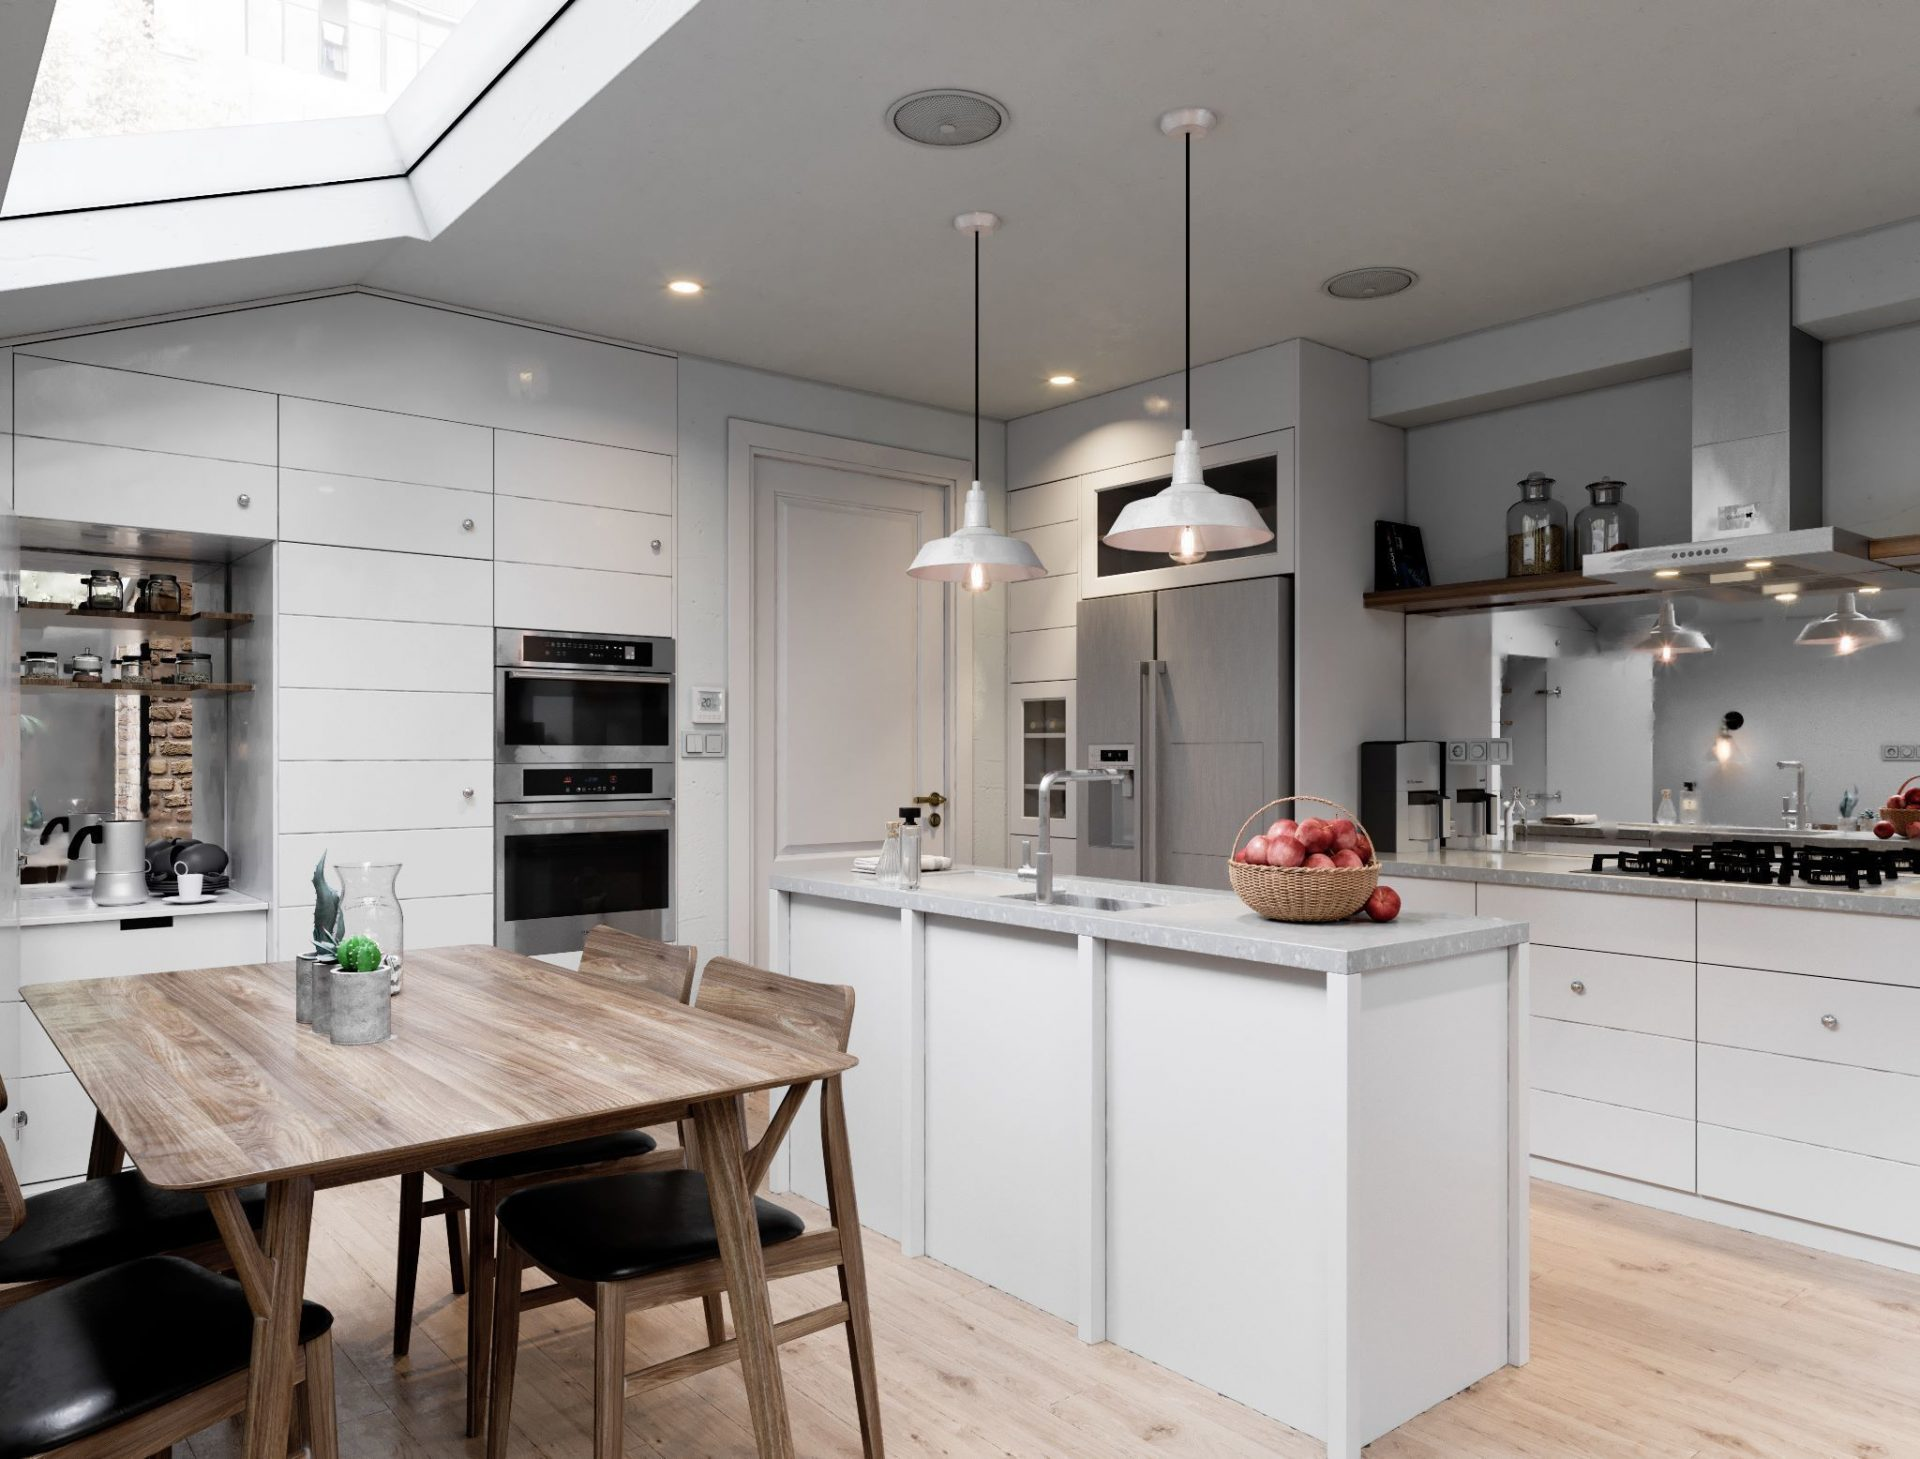 The kitchen is decorated in white and grey tones. The beige floor and dining table made of expensive wood blend fine with the other components of the interior. As the main elements, the freestanding dining table and integrated sink are in the center of the kitchen. All other furniture pieces are against the walls. Pay attention to the right lighting which allows the owners of the kitchen to quickly, easily and effectively do different works. Make your kitchen space comfortable, beautiful, and fully functional right now with our outstanding interior designers. Just call our managers and enjoy your updated kitchen!